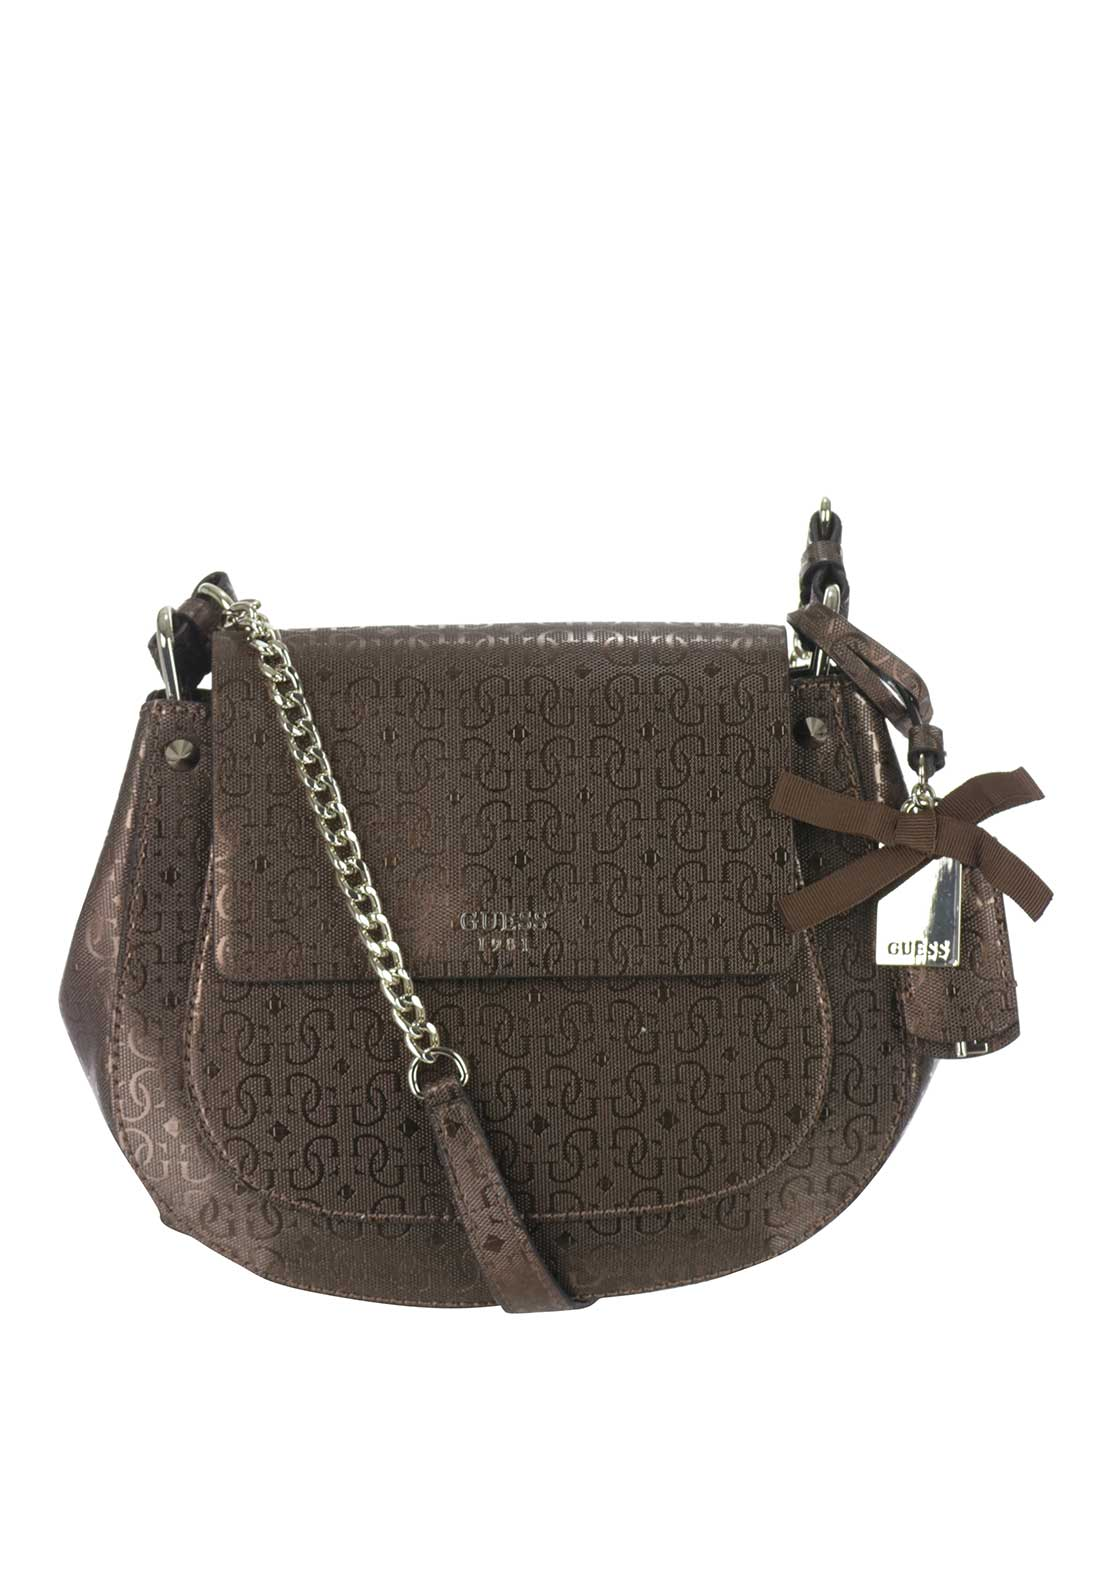 Guess Marian Glassy-Effect Crossbody Bag, Bronze